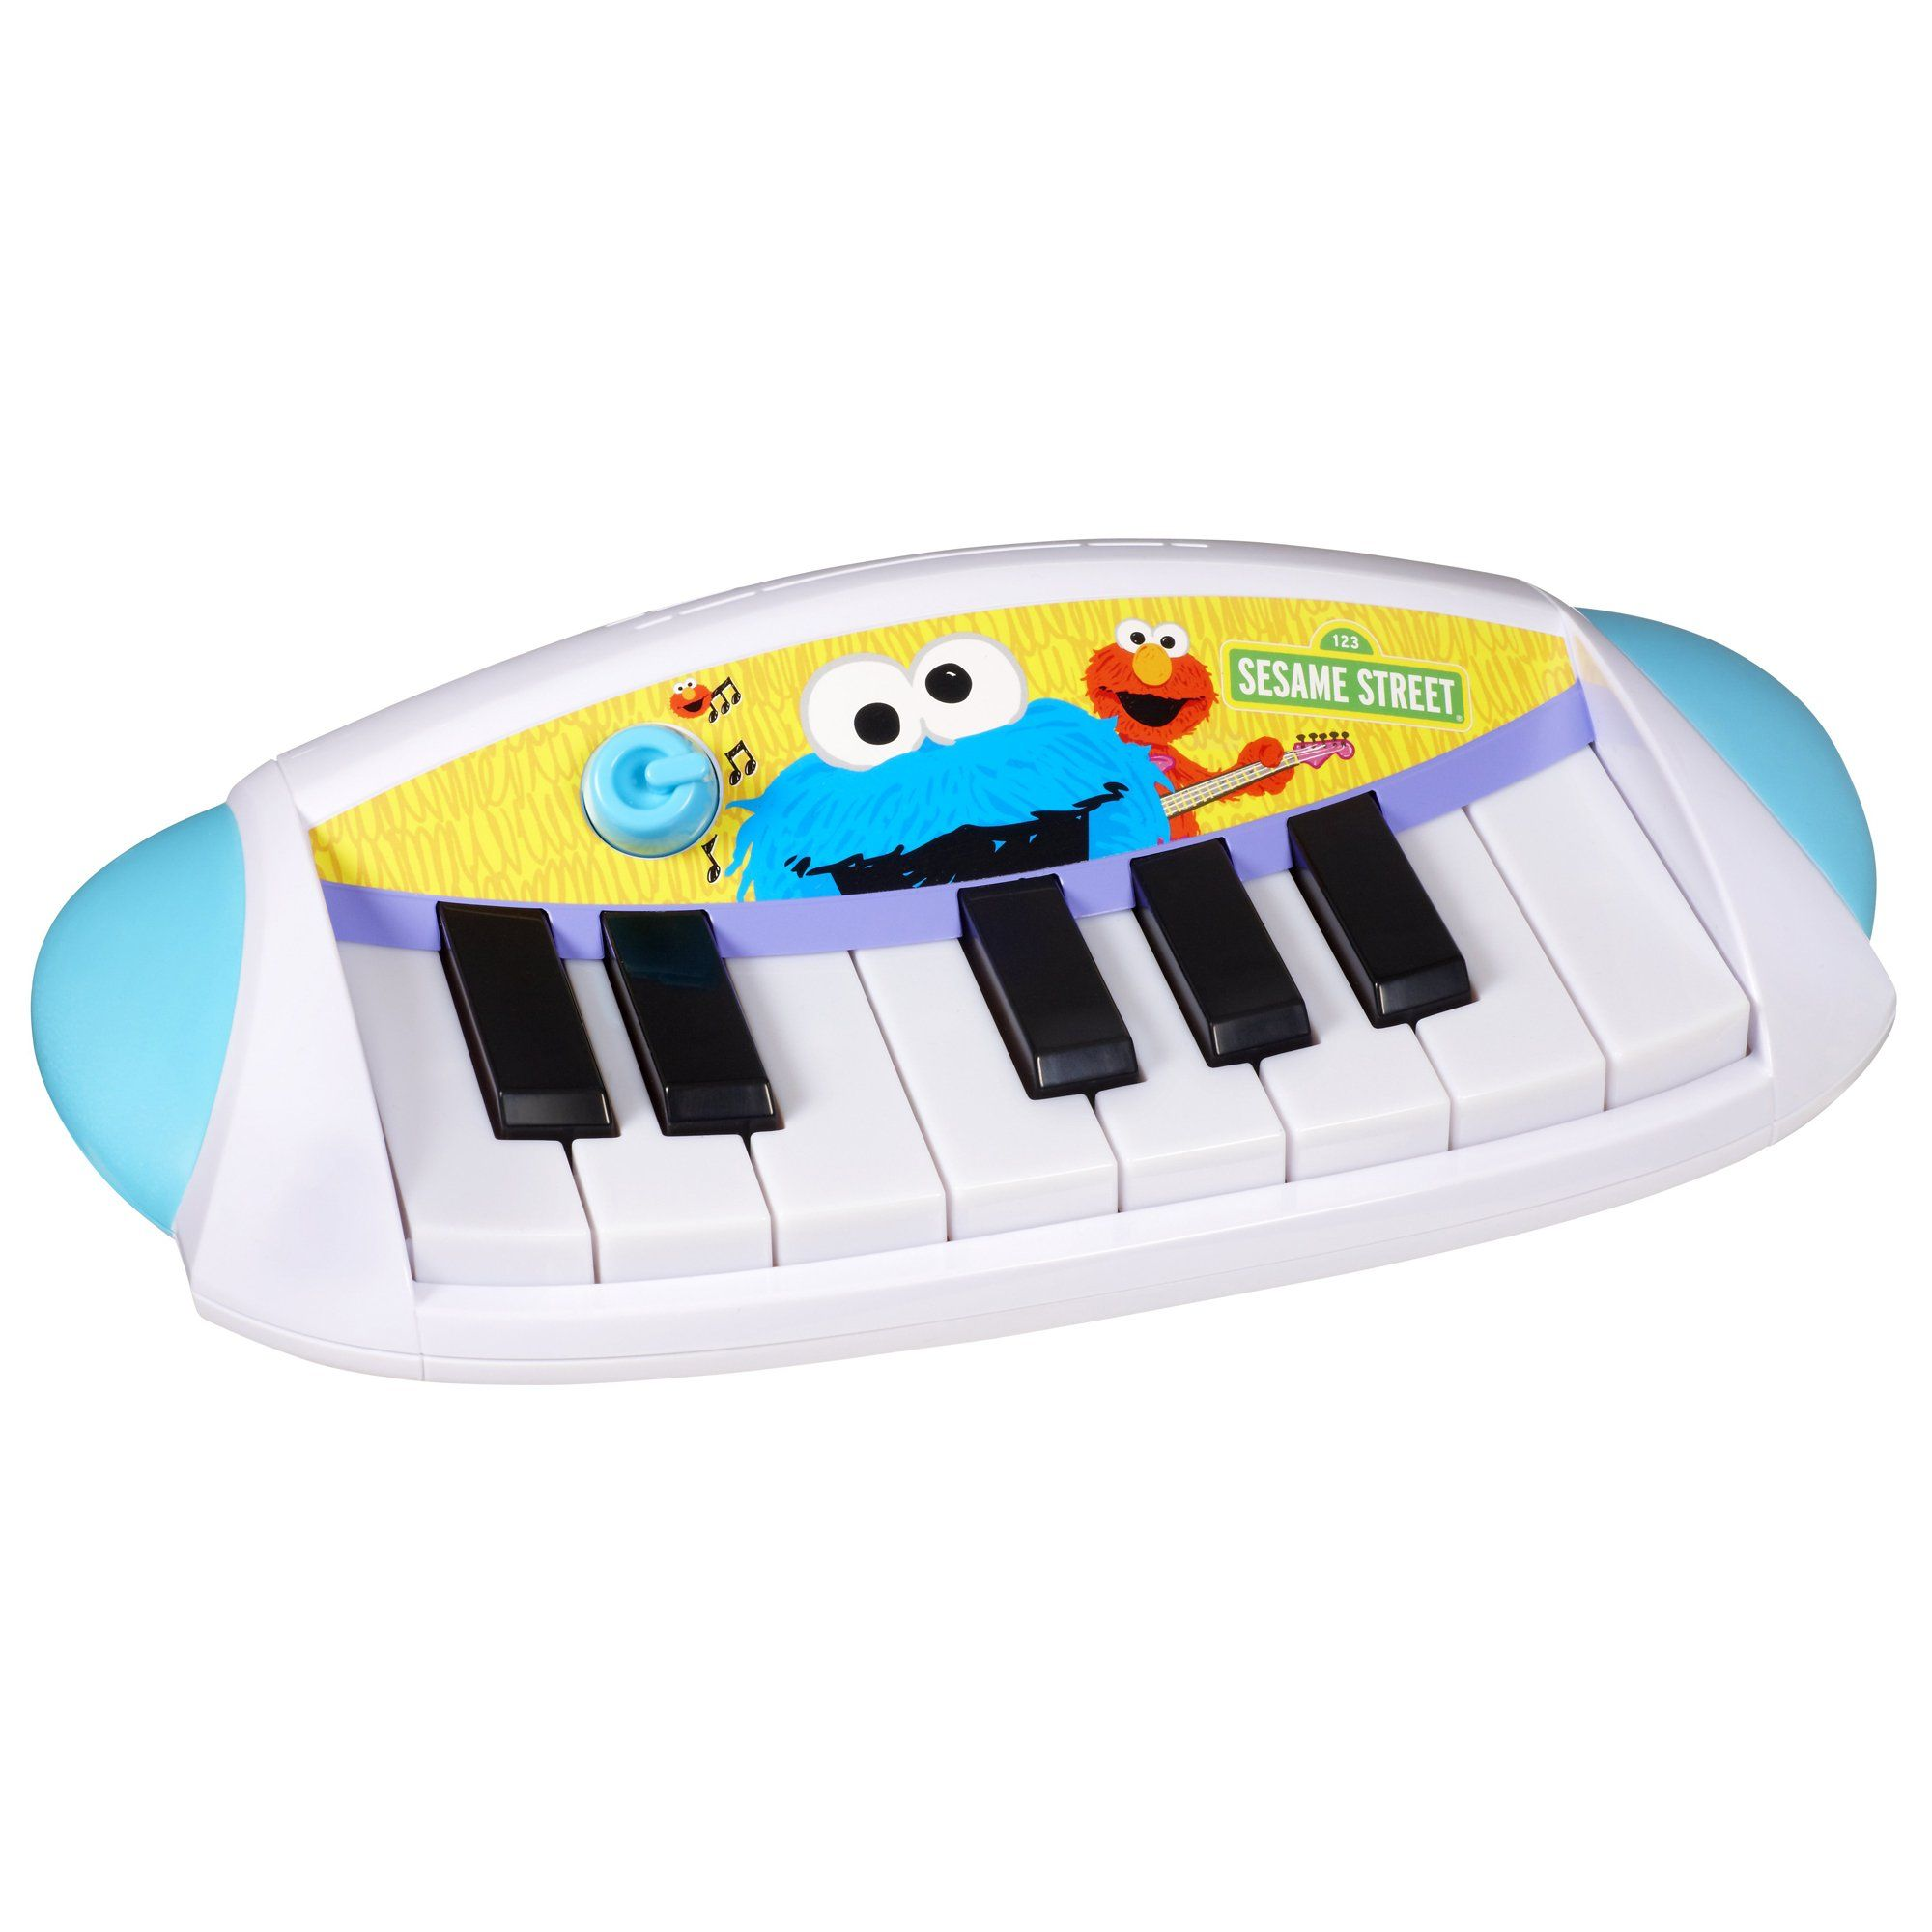 """Playskool Sesame Street Let's Rock! Cookie Monster Keyboard. Packed with fun features, the Cookie Monster Keyboard includes three preschool tunes, three modes of play, and bright, light-up keys. For even more rockin' fun, the Let's Rock Cookie Monster Keyboard also interacts with the Let's Rock Elmo character (sold separately) who """"magically"""" knows when you have the Let's Rock Cookie Monster Keyboard and plays along with you to the """"ABC Song"""". Includes 3 """"AA"""" batteries. Keyboard comes…"""